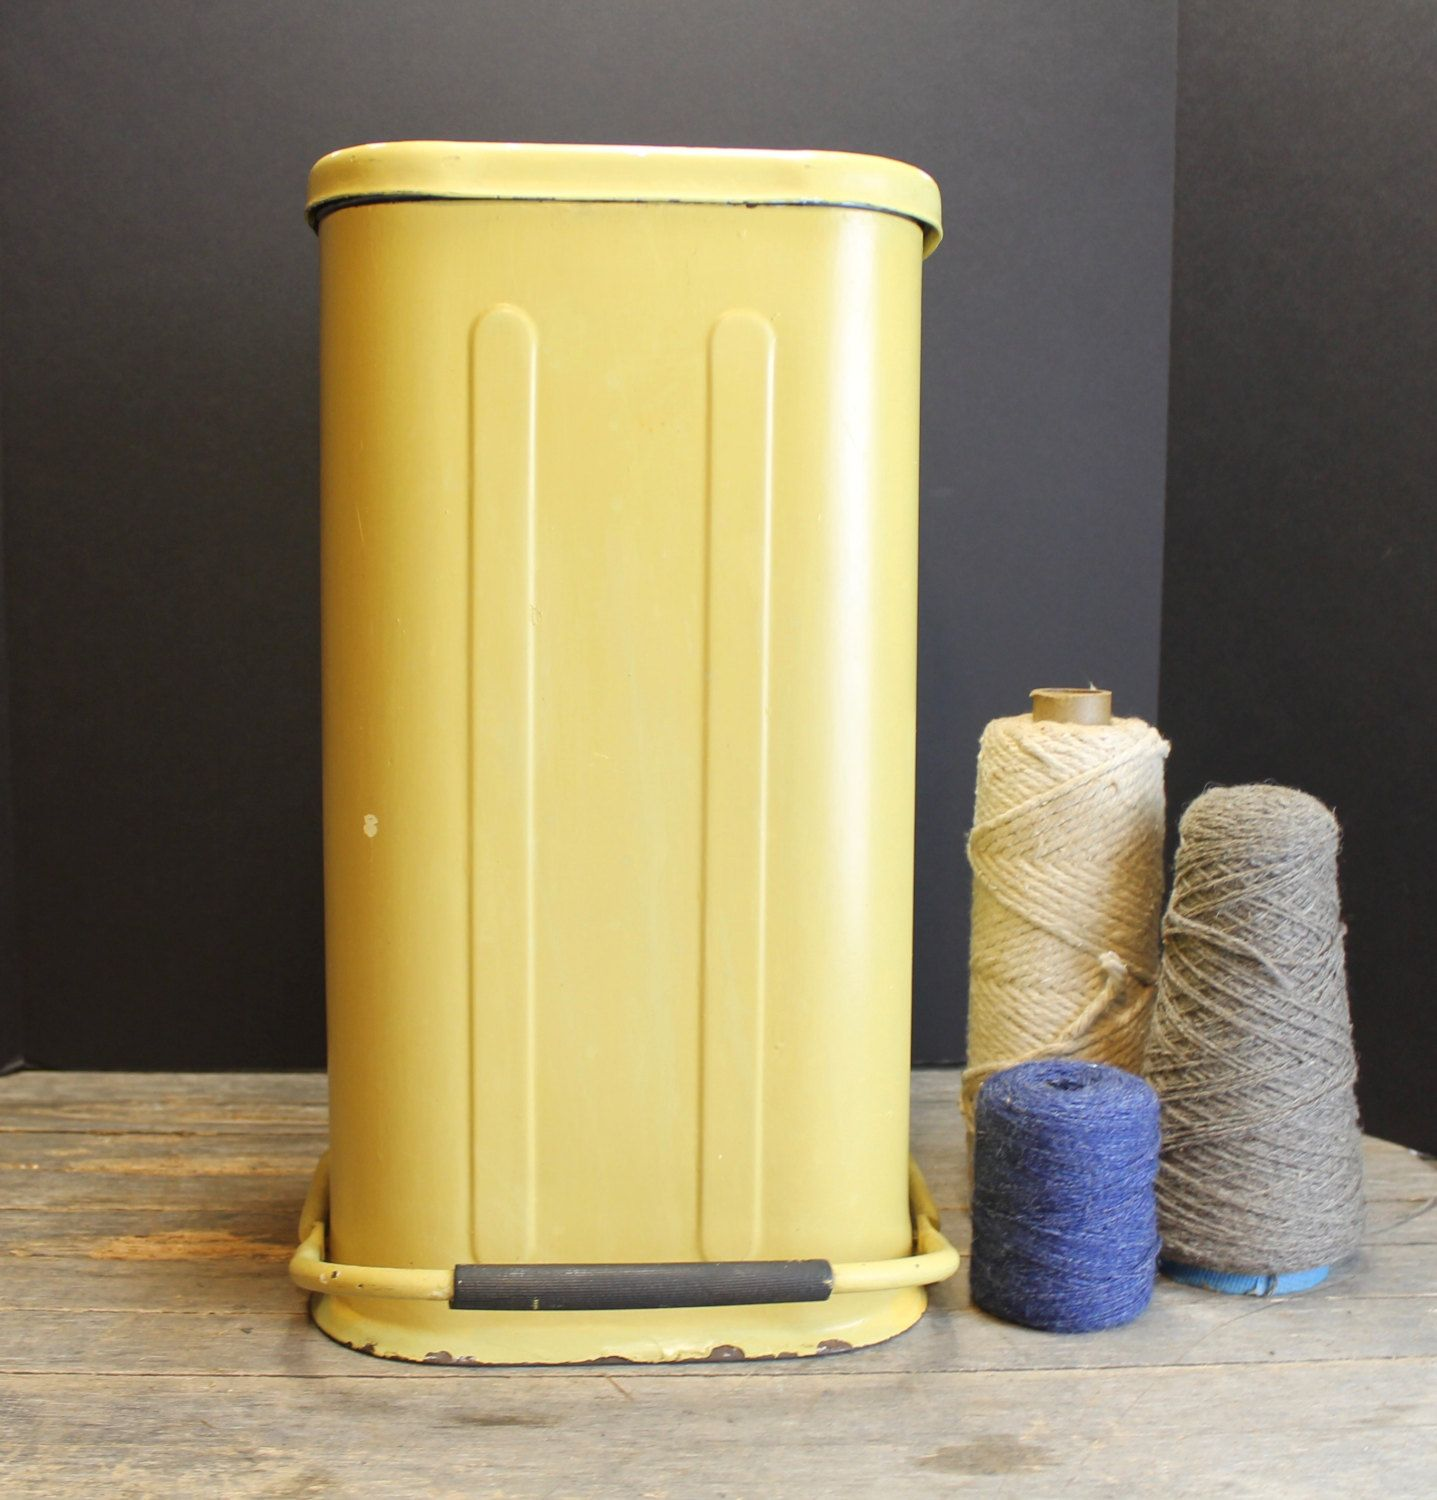 Vintage Yellow Gold Step Up Trashcan Retro Step Trash Can